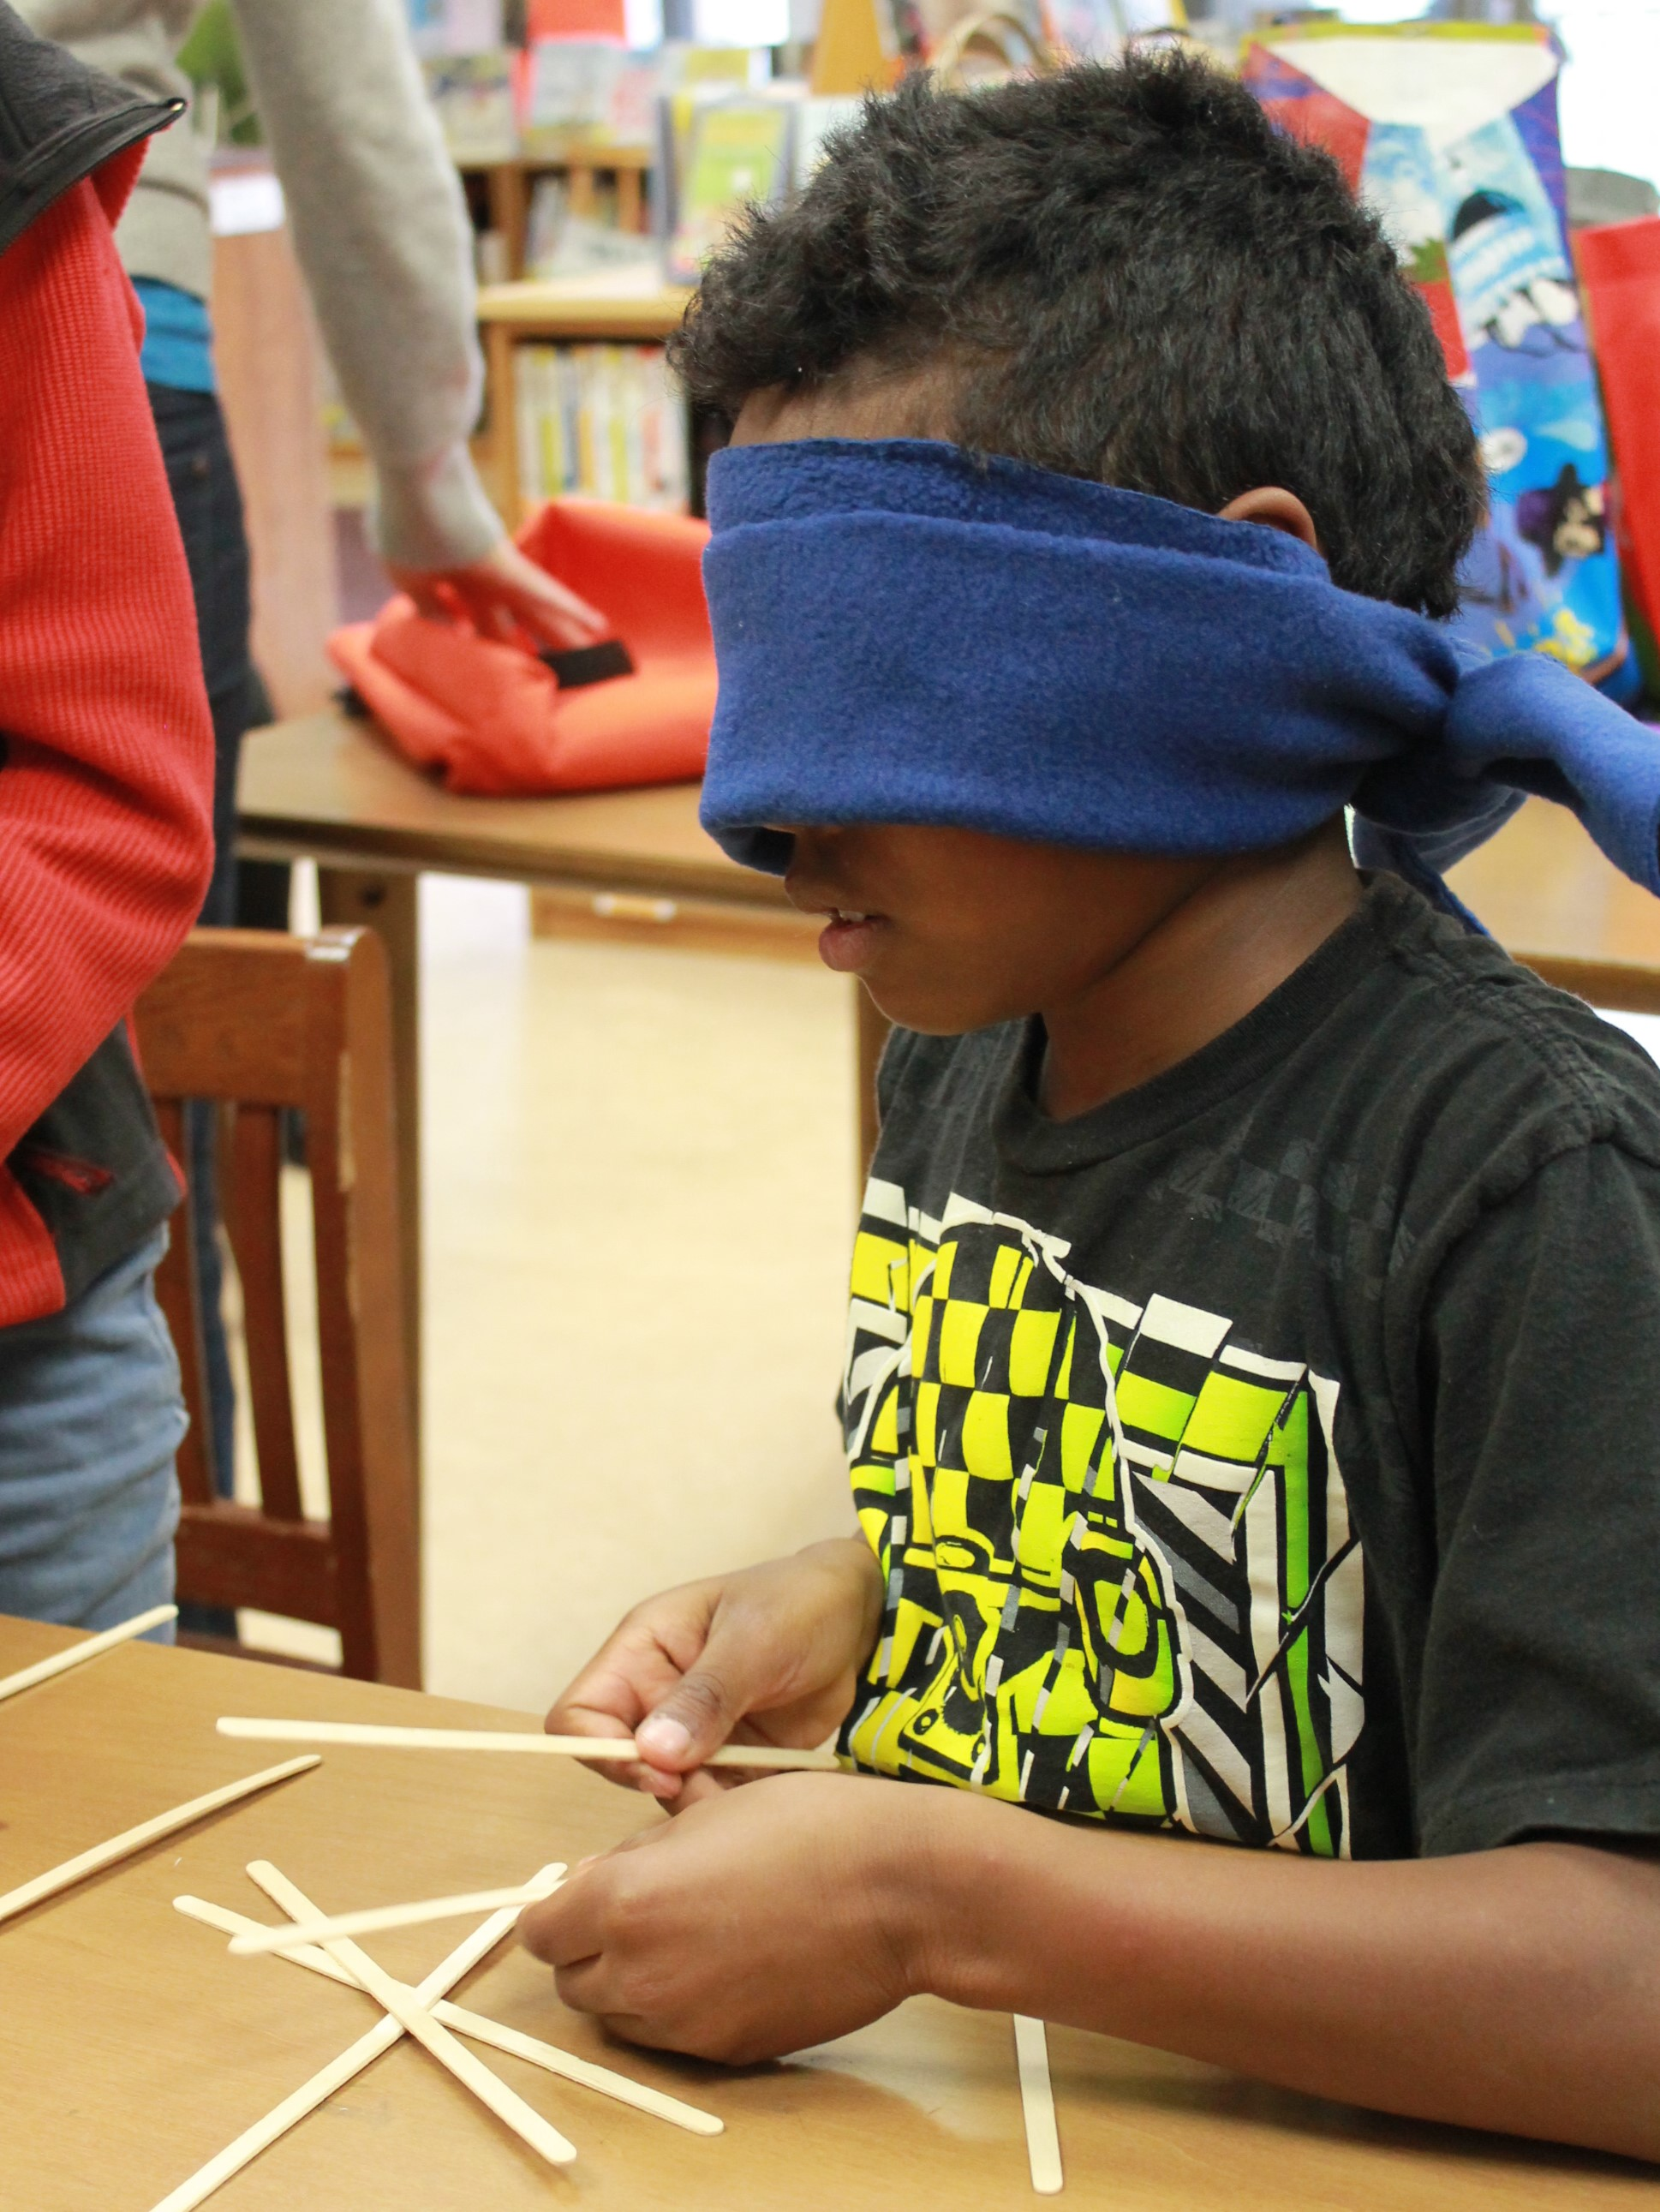 Boy with a blindfold tries to build a structure at a school inclusion awareness event